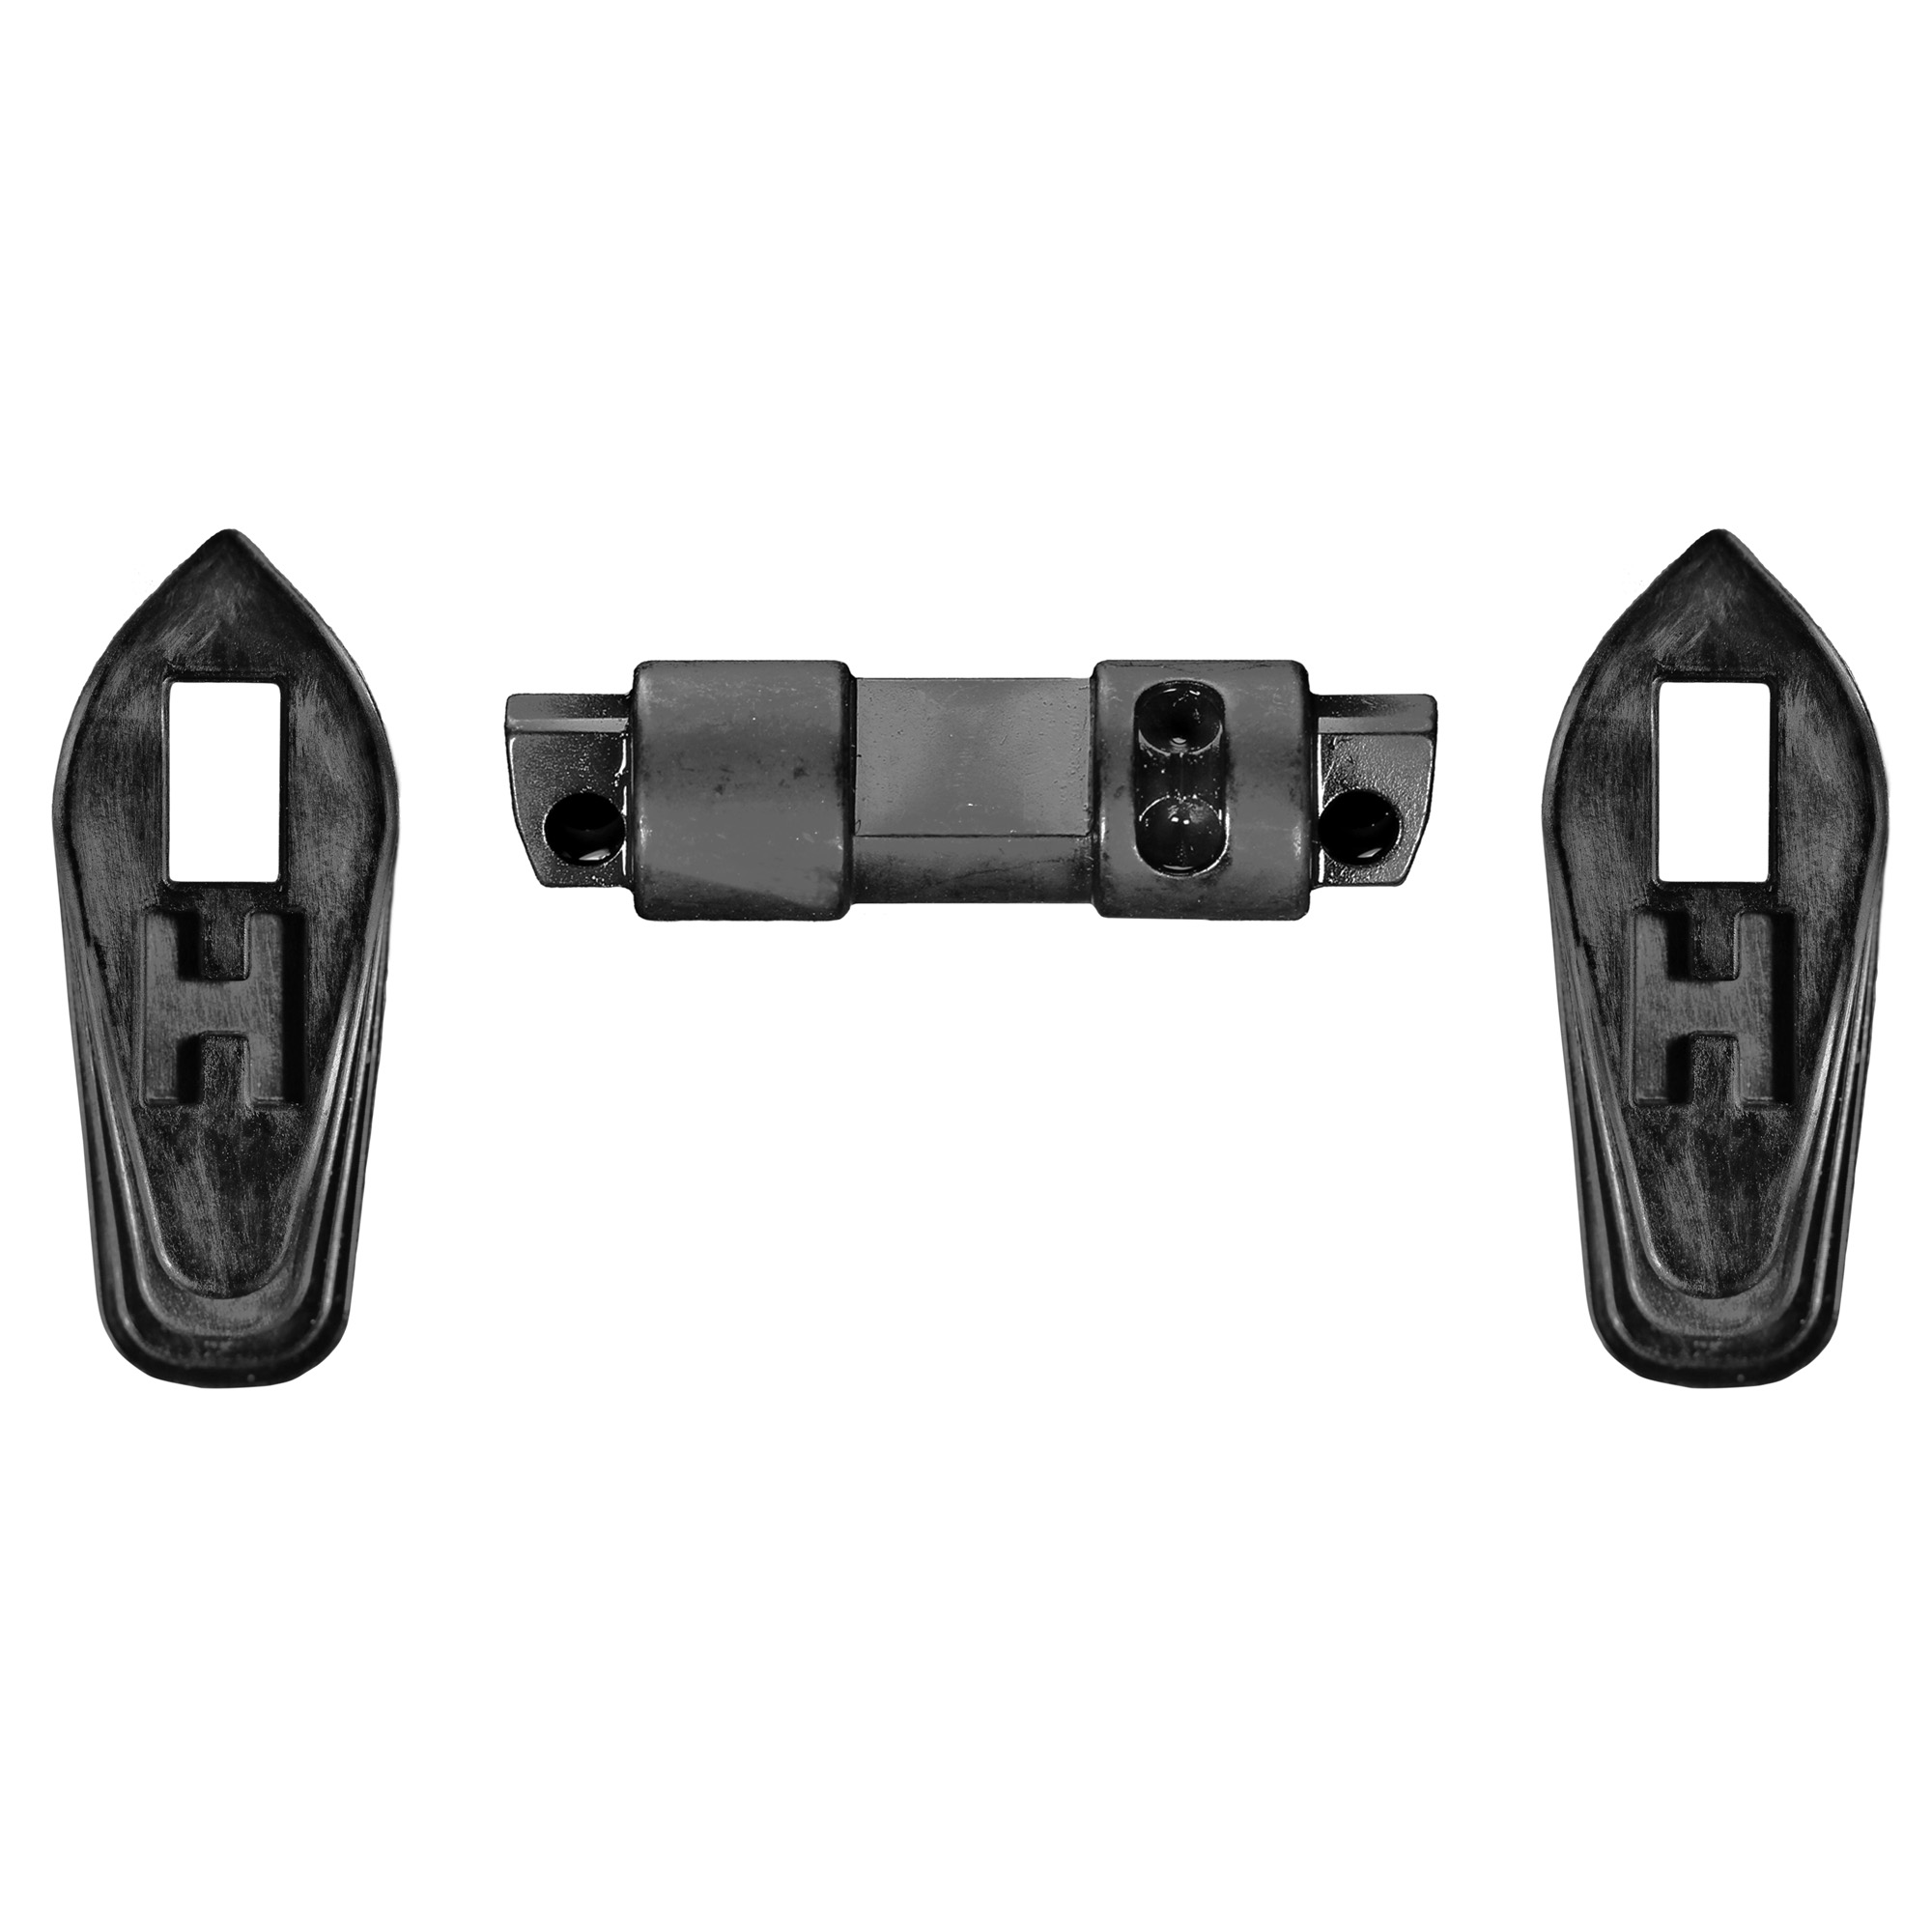 The HIPERSWITCH (High Performance Switch) is an ambidextrous safety for your AR15 or AR-10 that is 100% compatible with HIPERFIRE triggers. It features a 60 degree swing between SAFE and FIRE (much safer than 45 degree versions that can be rotated into FIRE by the trigger when on SAFE). The HIPERSWITCH levers are uniquely designed for tactile access making the selection action in either direction feel shorter than 60 degrees.